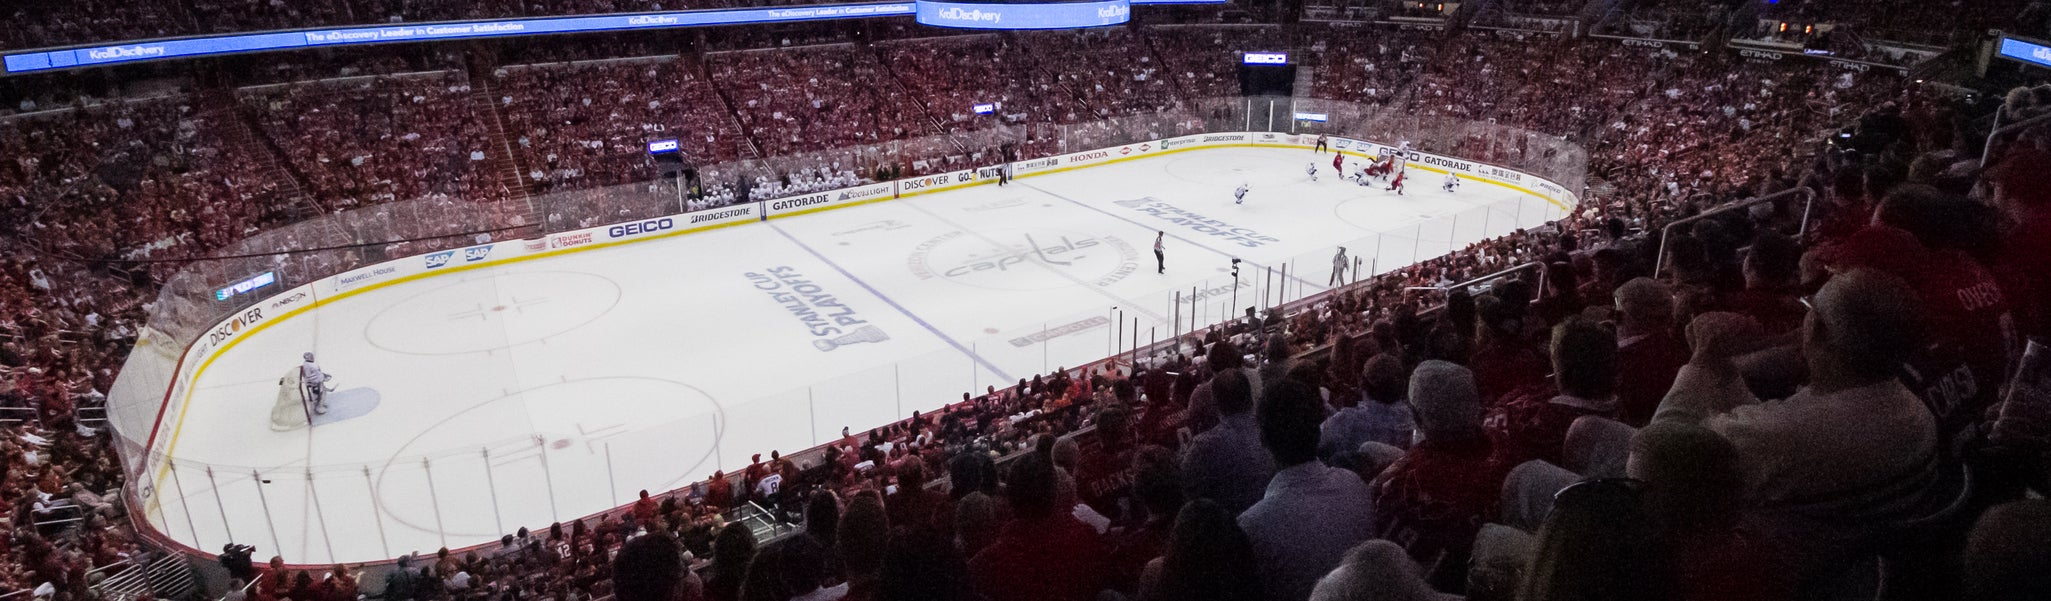 Seat view from Acela Level Corner 213 at Capital One Arena